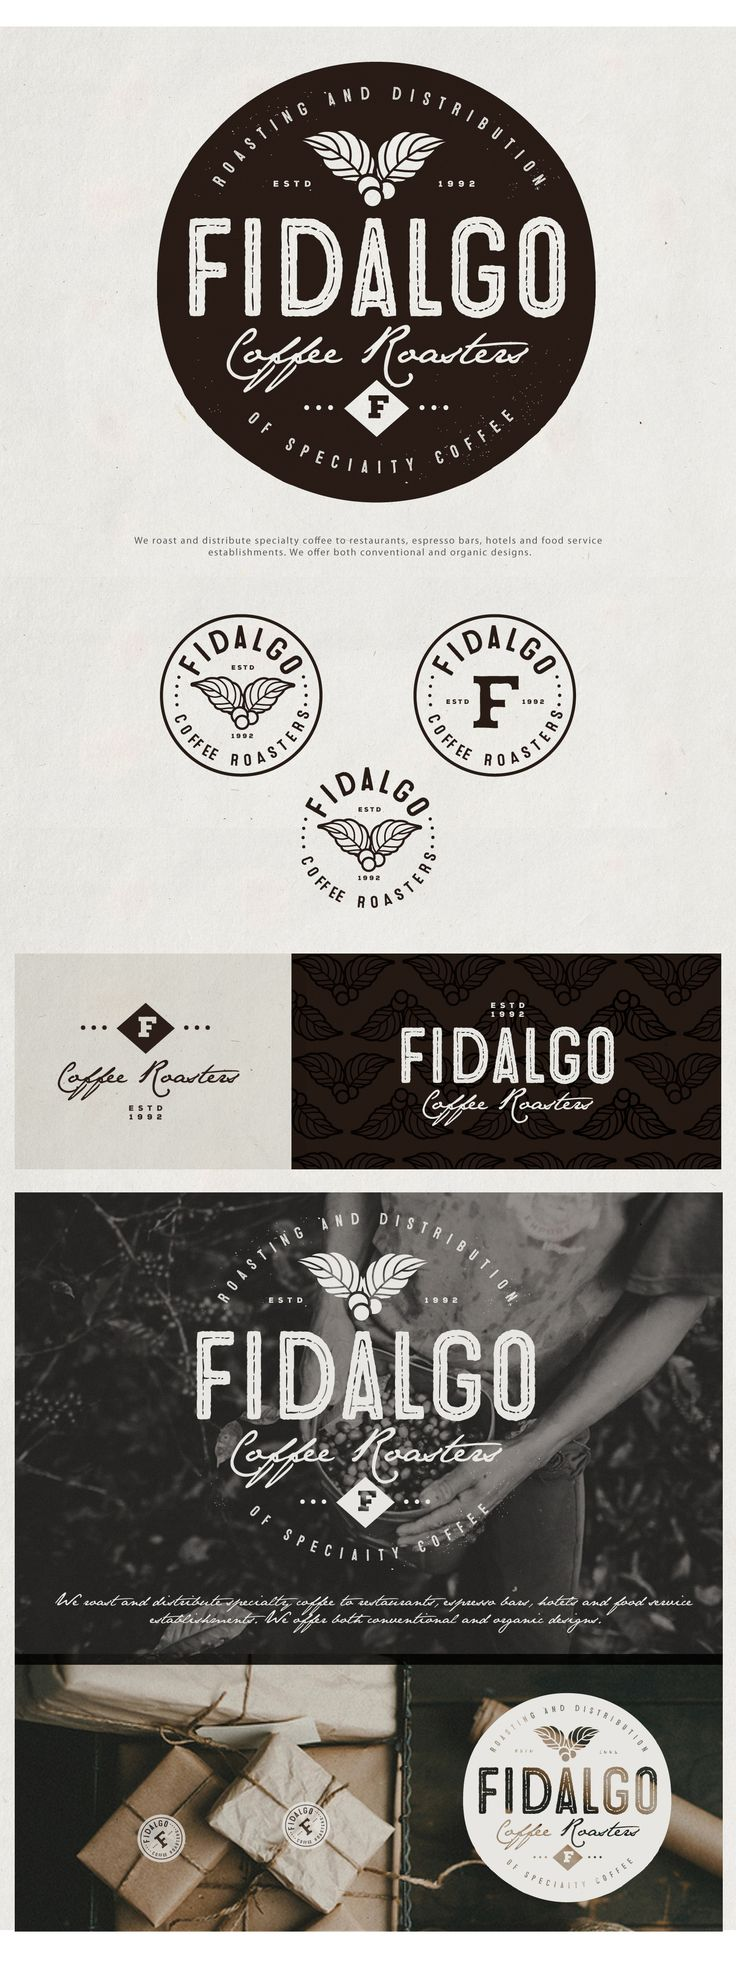 Fidalgo Coffee Roasters | 99designs                                                                                                                                                                                 More